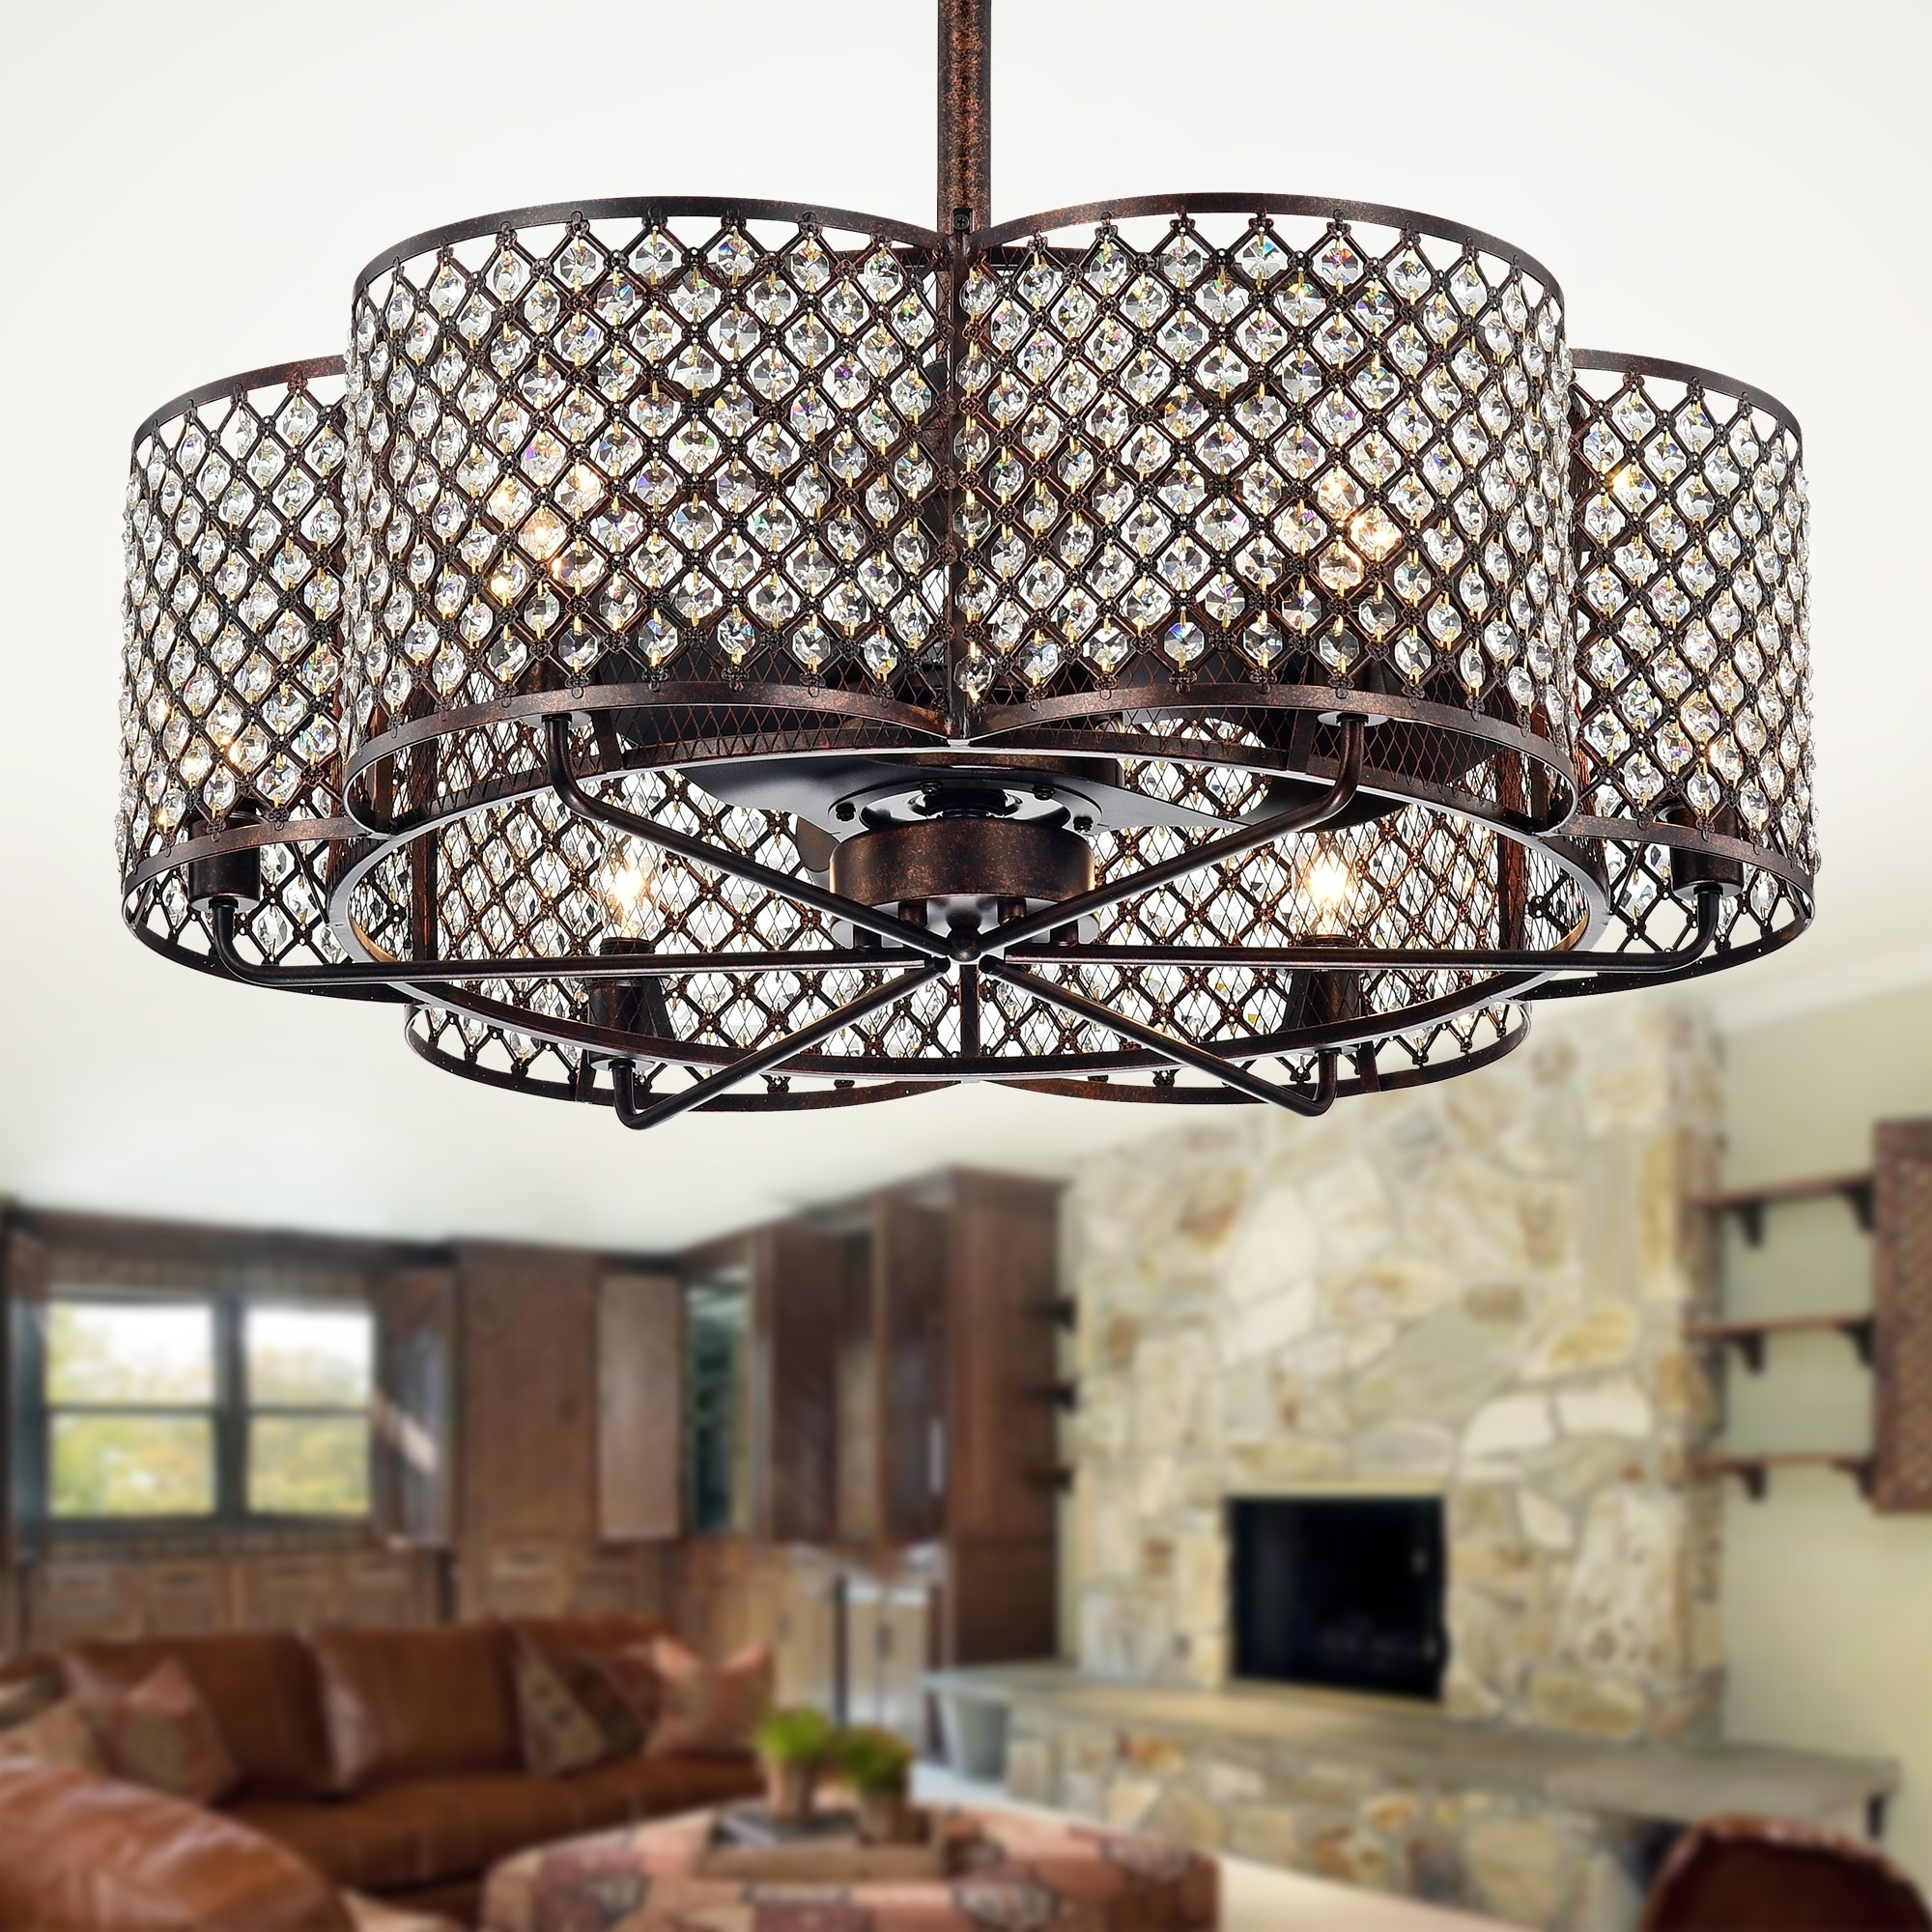 Shop Black Friday Deals On Linza 30 Inch Rustic Bronze Crystal Fandelier Flower Lighted Ceiling Fan Incl Remote Control O 30 1 In X H 29 5 In Overstock 28773122